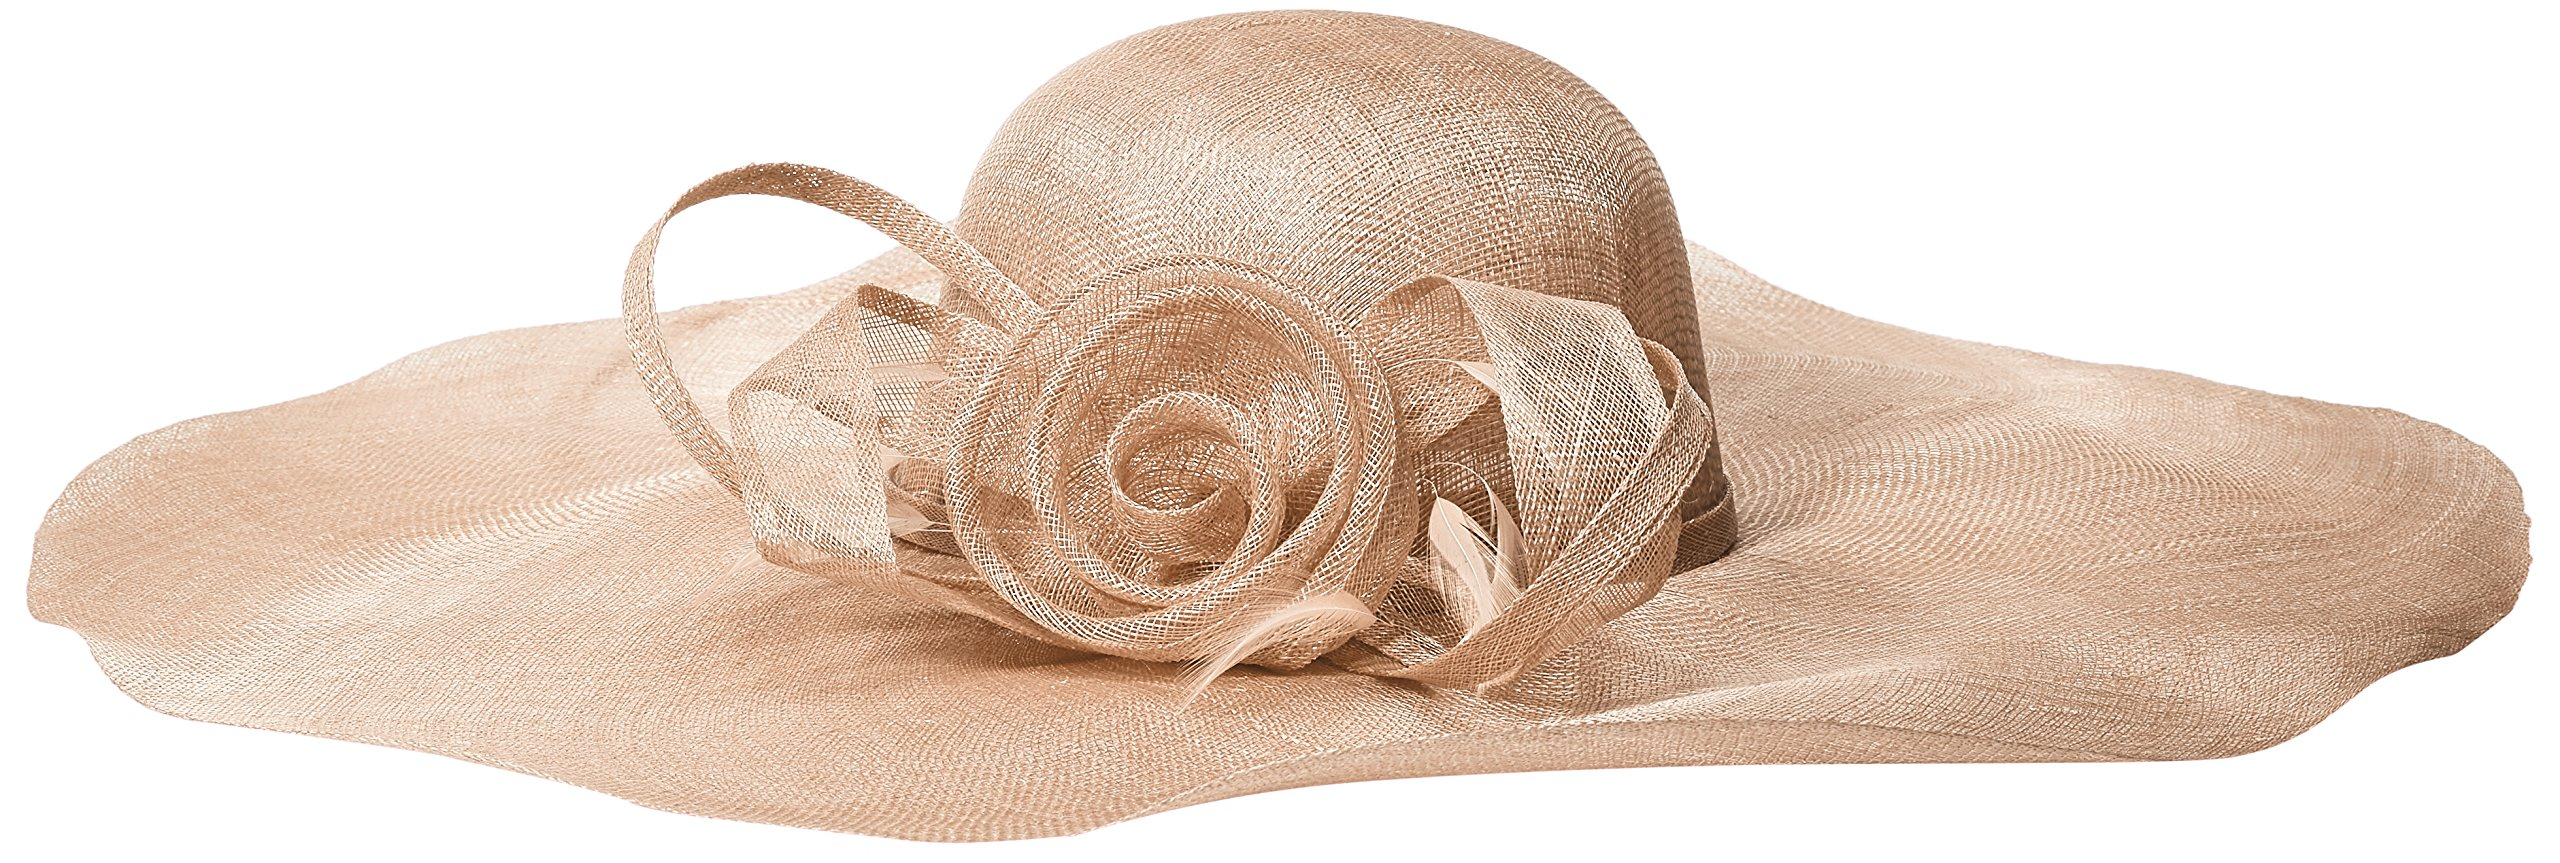 Scala Women's Big Brim Sinamay With Loops, Taupe, One Size by Scala